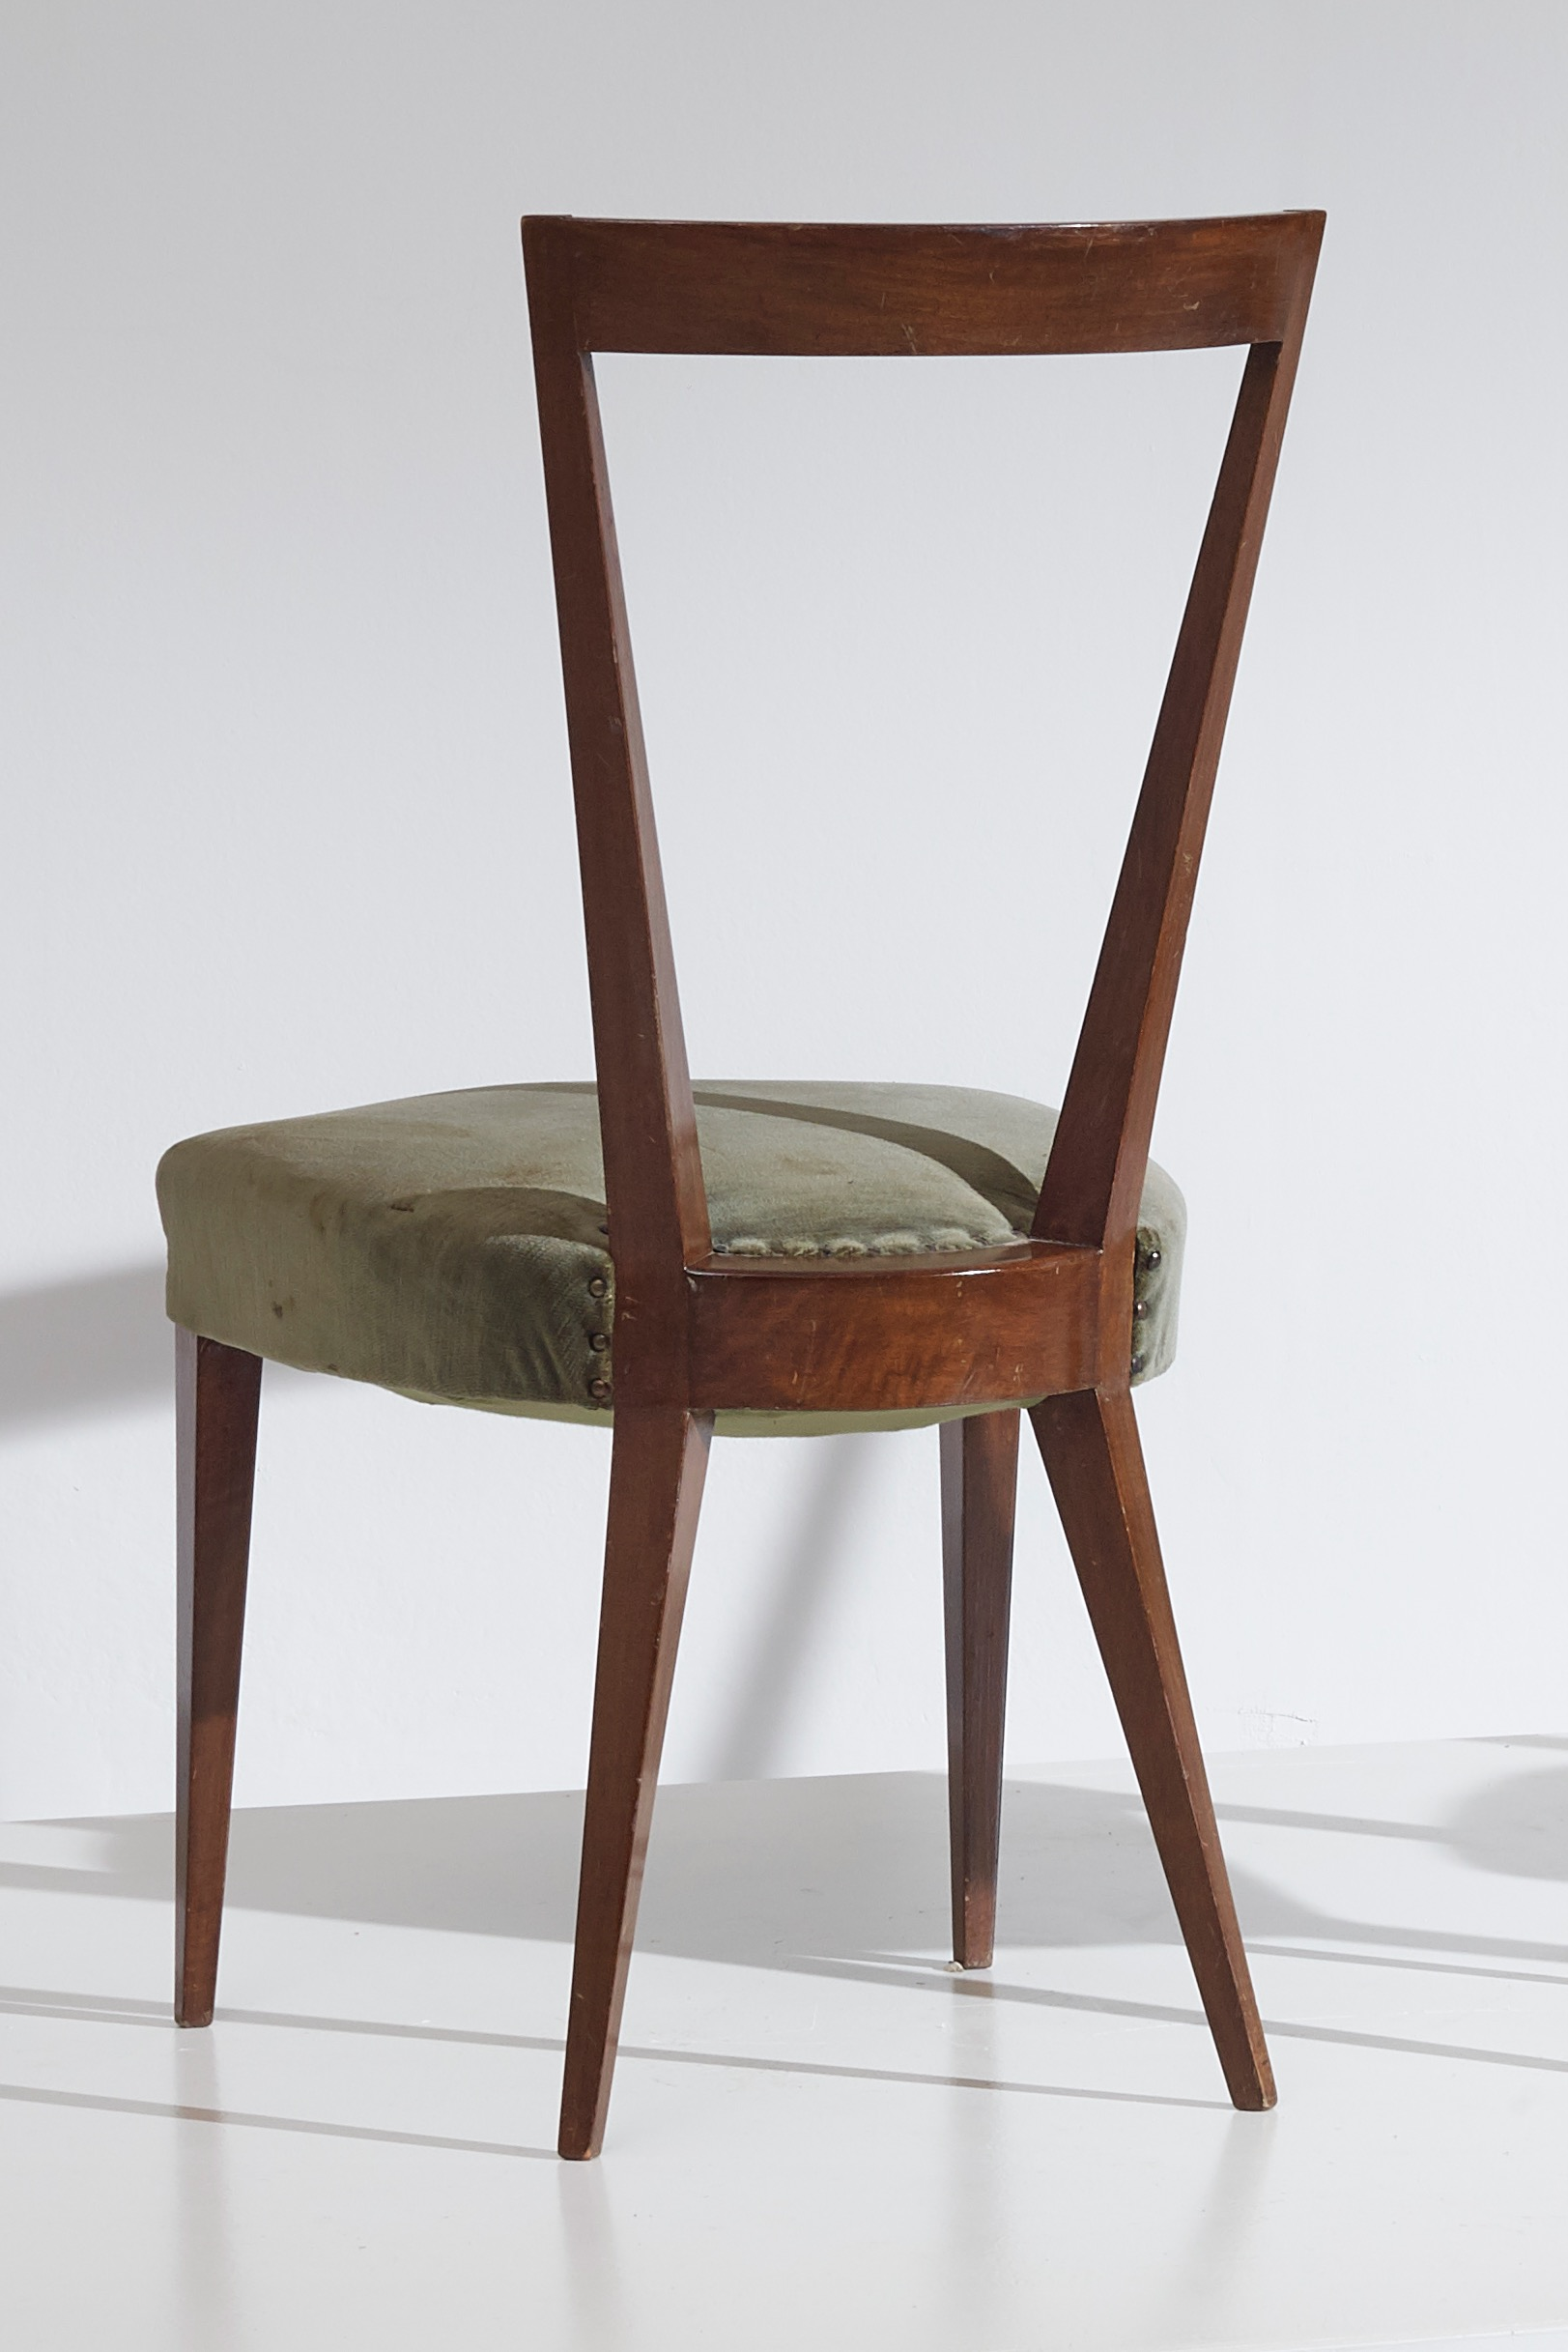 Very rare set of four Gio Ponti dining chairs designed in the 1938 and produced by Casa e Giardino, Italy